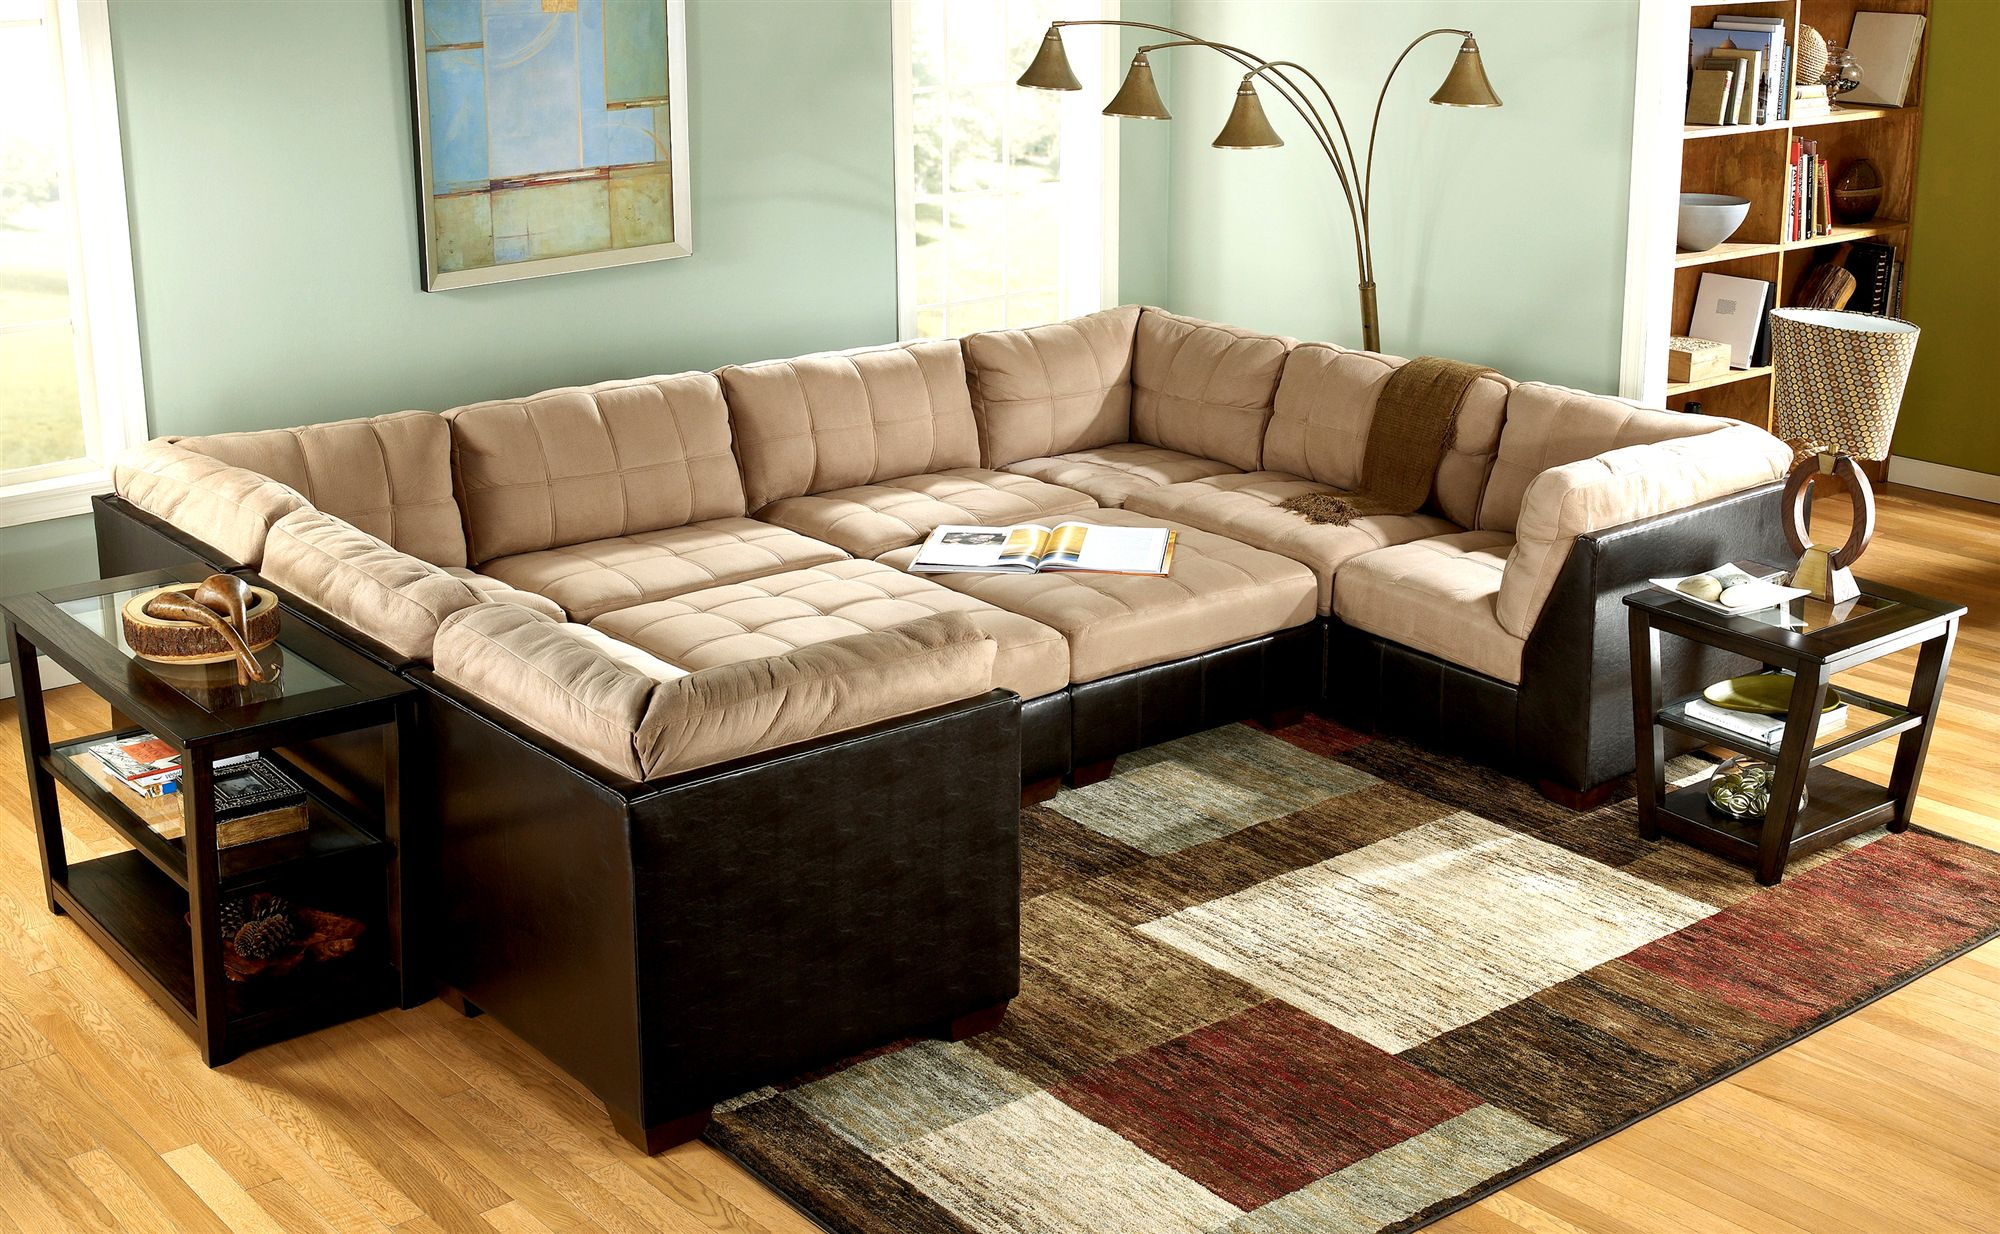 Chair Mesmerizing Affordable Sectionals With Lovely Leather throughout 15 Genius Ideas How to Build Affordable Living Room Sets For Sale